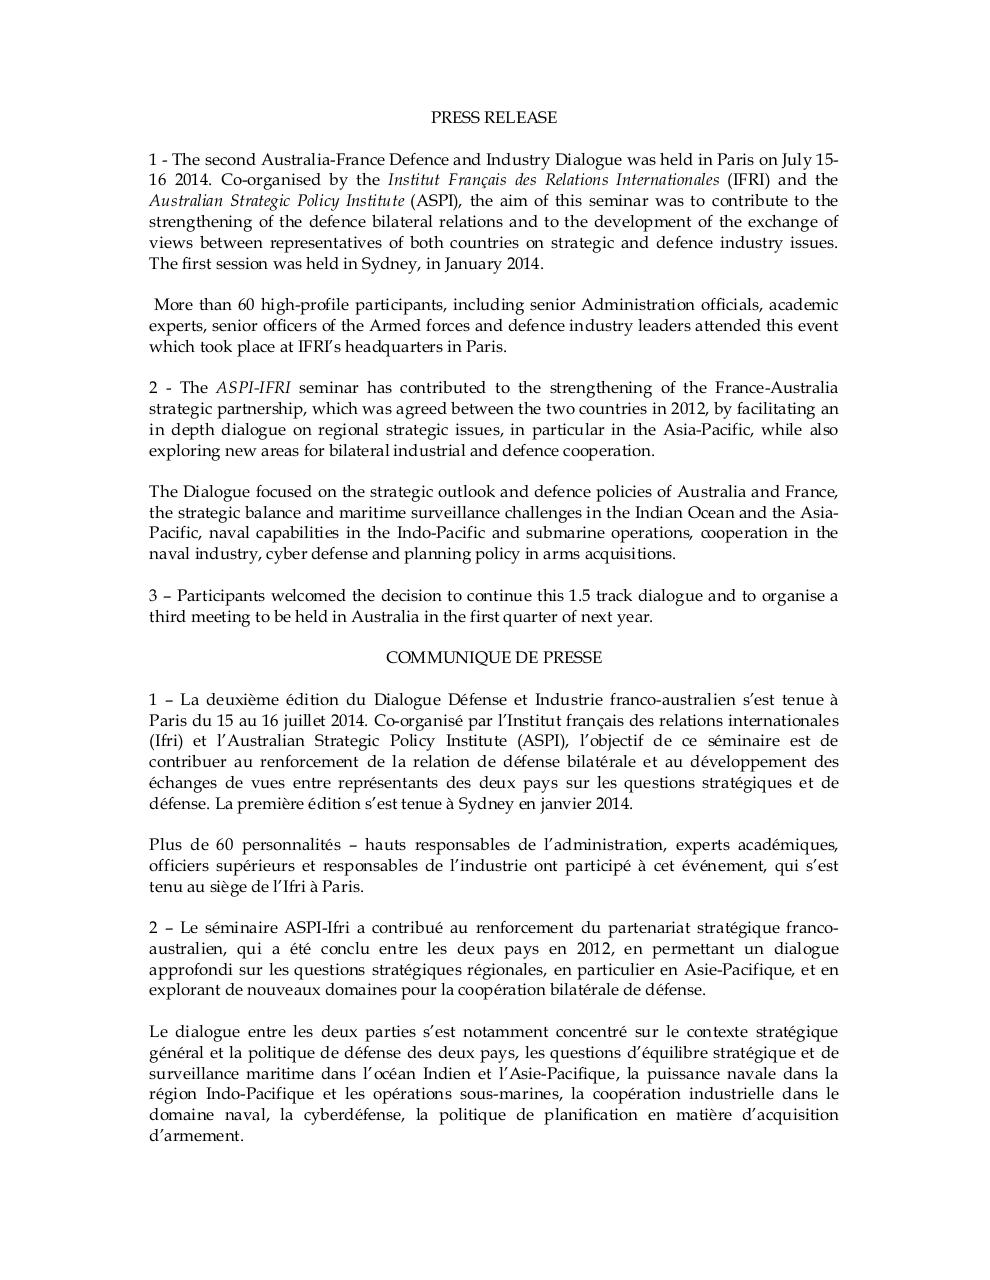 20140722 COMMUNIQUE DE PRESSE English version.pdf - page 1/2